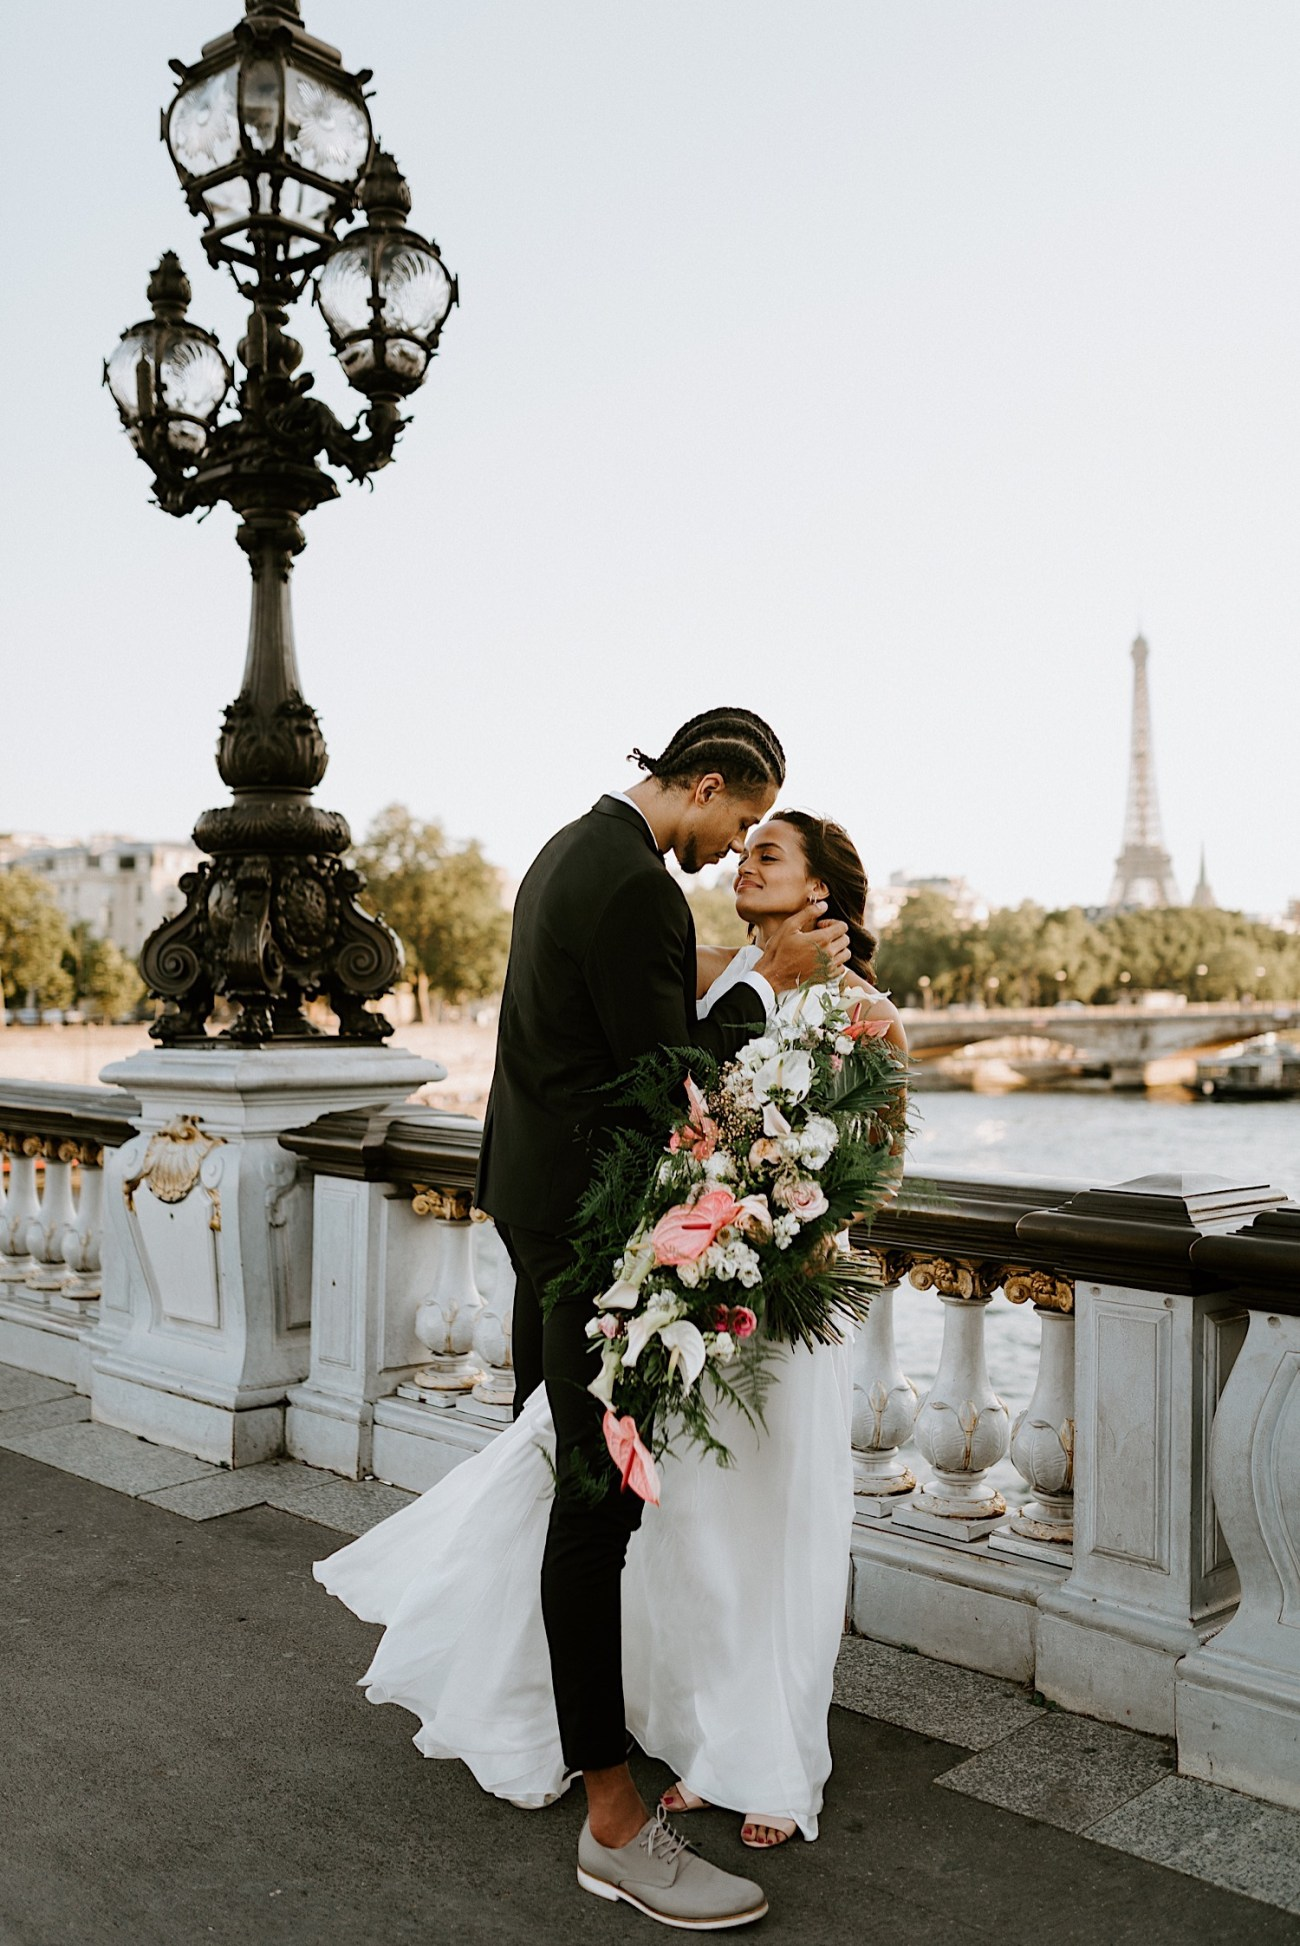 Paris Wedding Photos Paris Wedding Photographer Paris Photographe De Marriage Pont Alexandre Wedding Photos Anais Possamai Photography 27